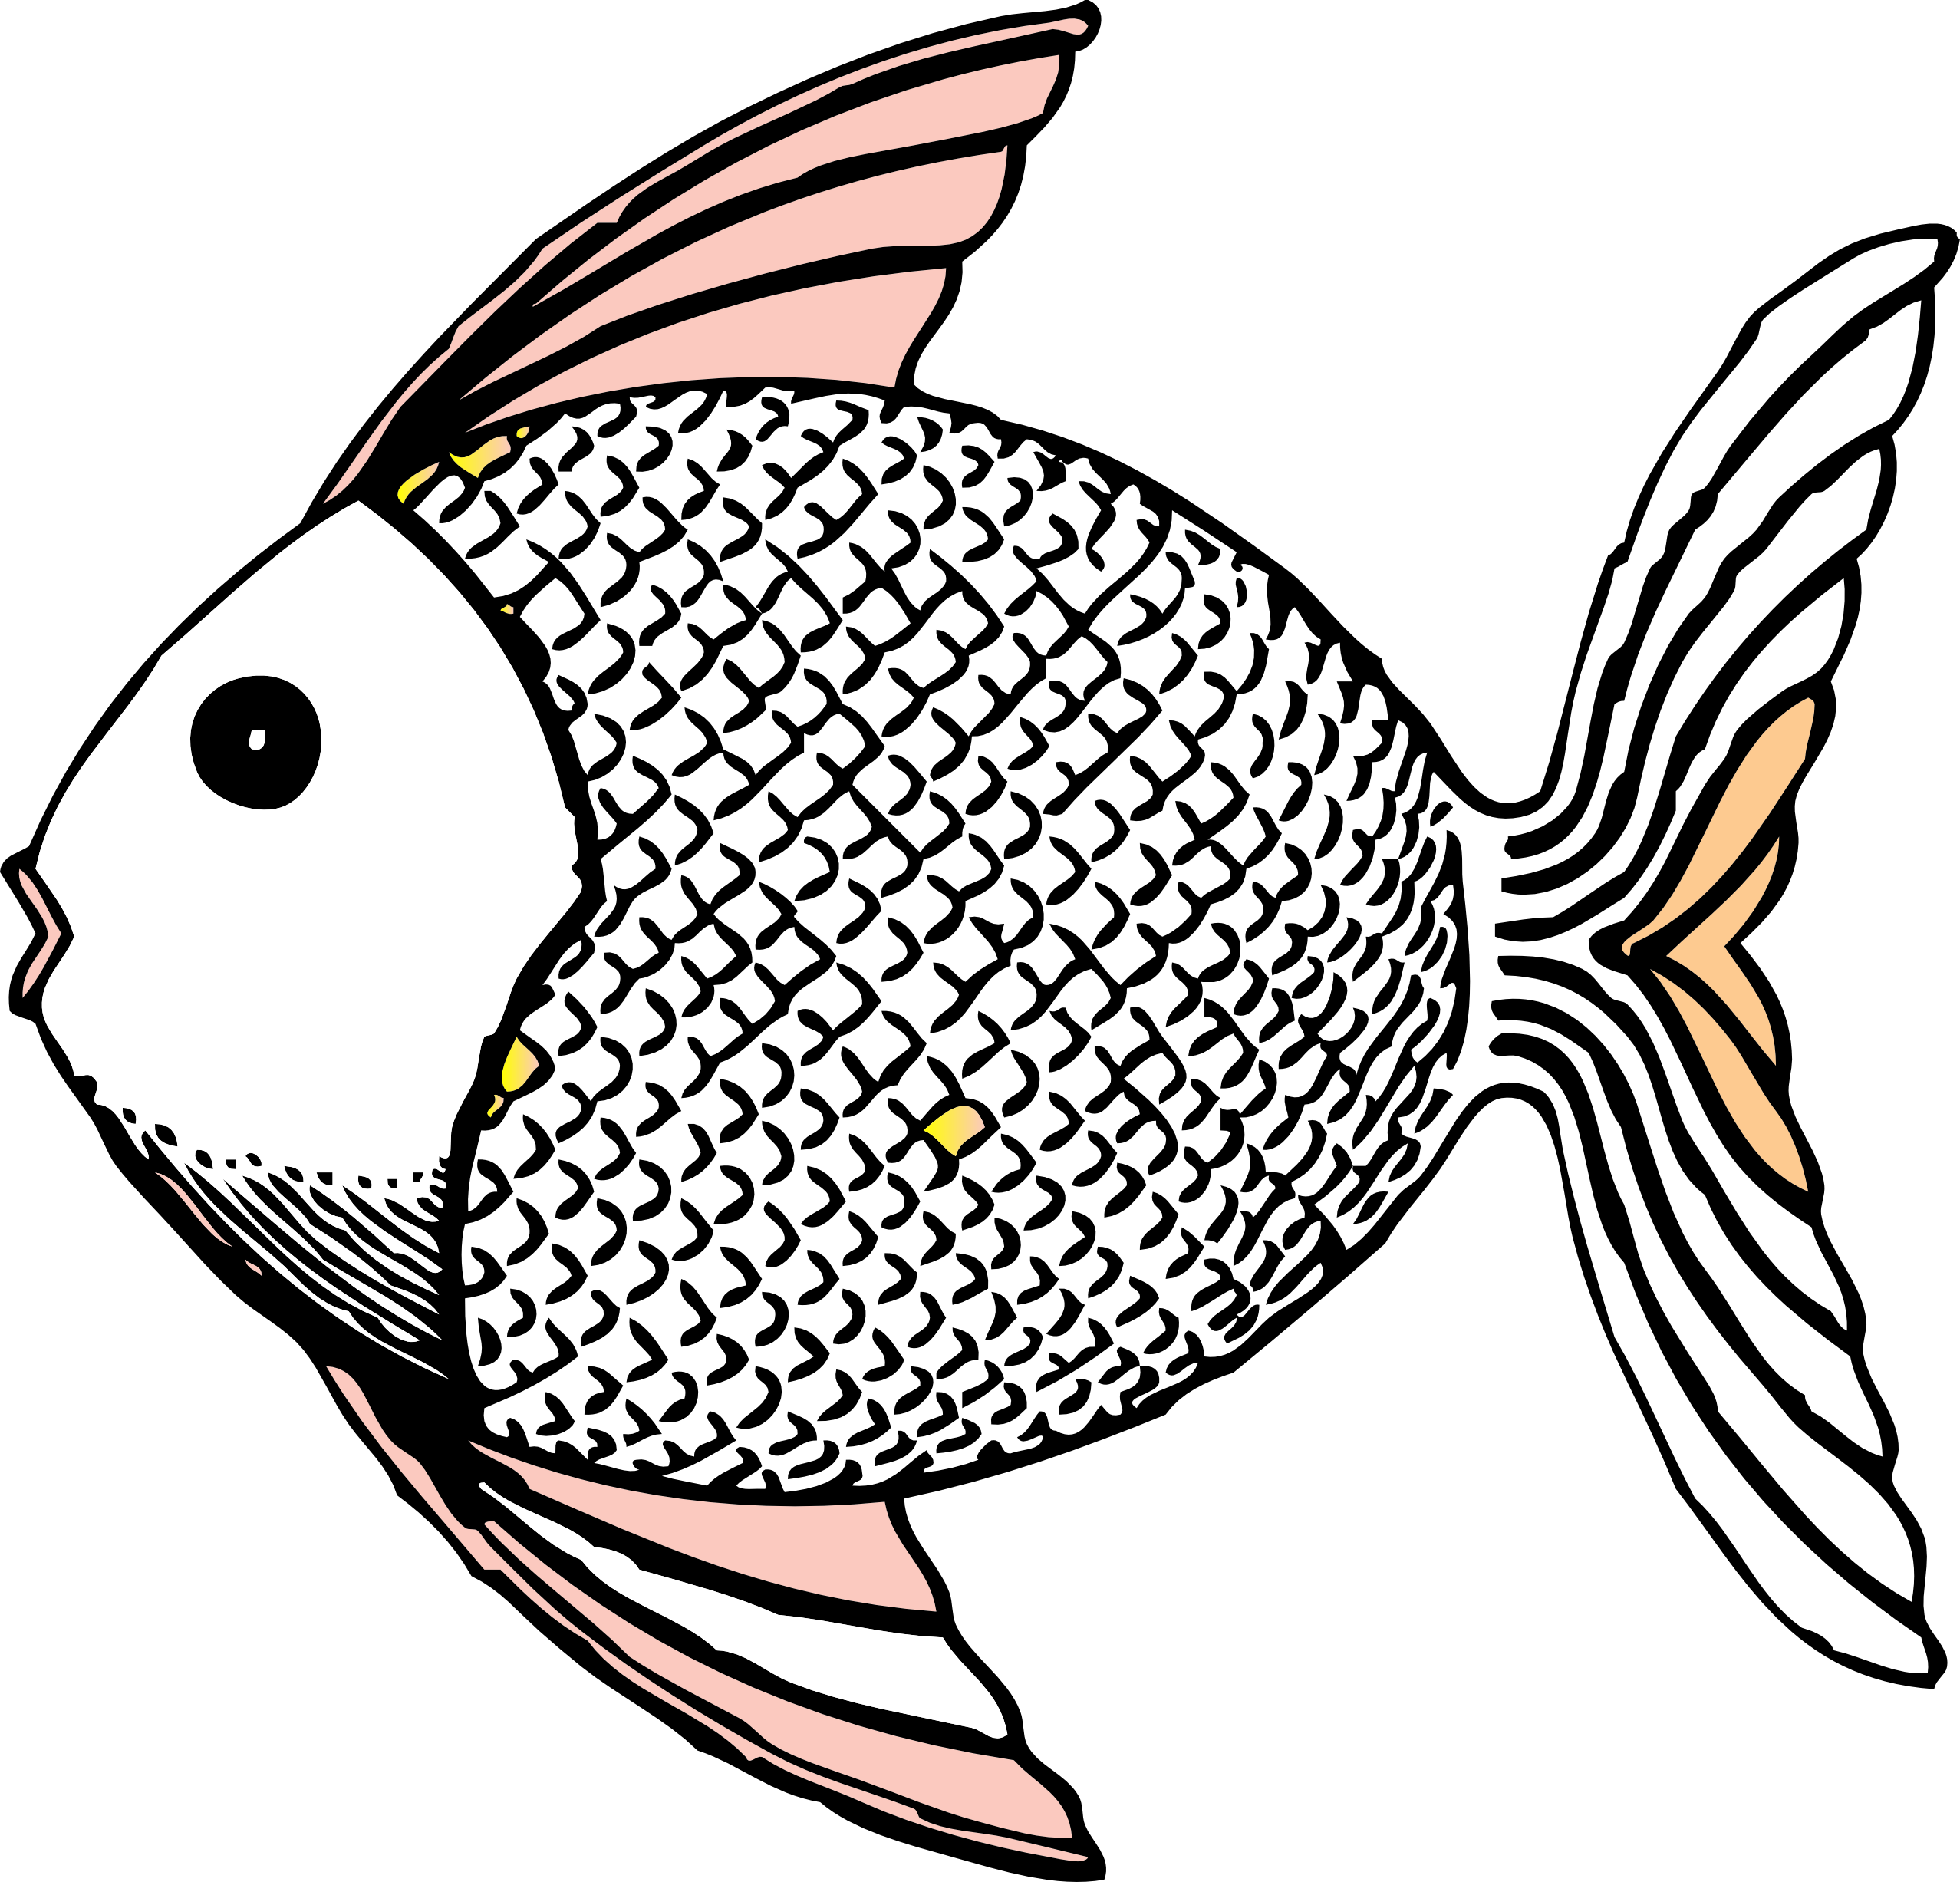 Kid fish clipart image free library Fish Clip Art Black and White | tropical fish black white line art ... image free library